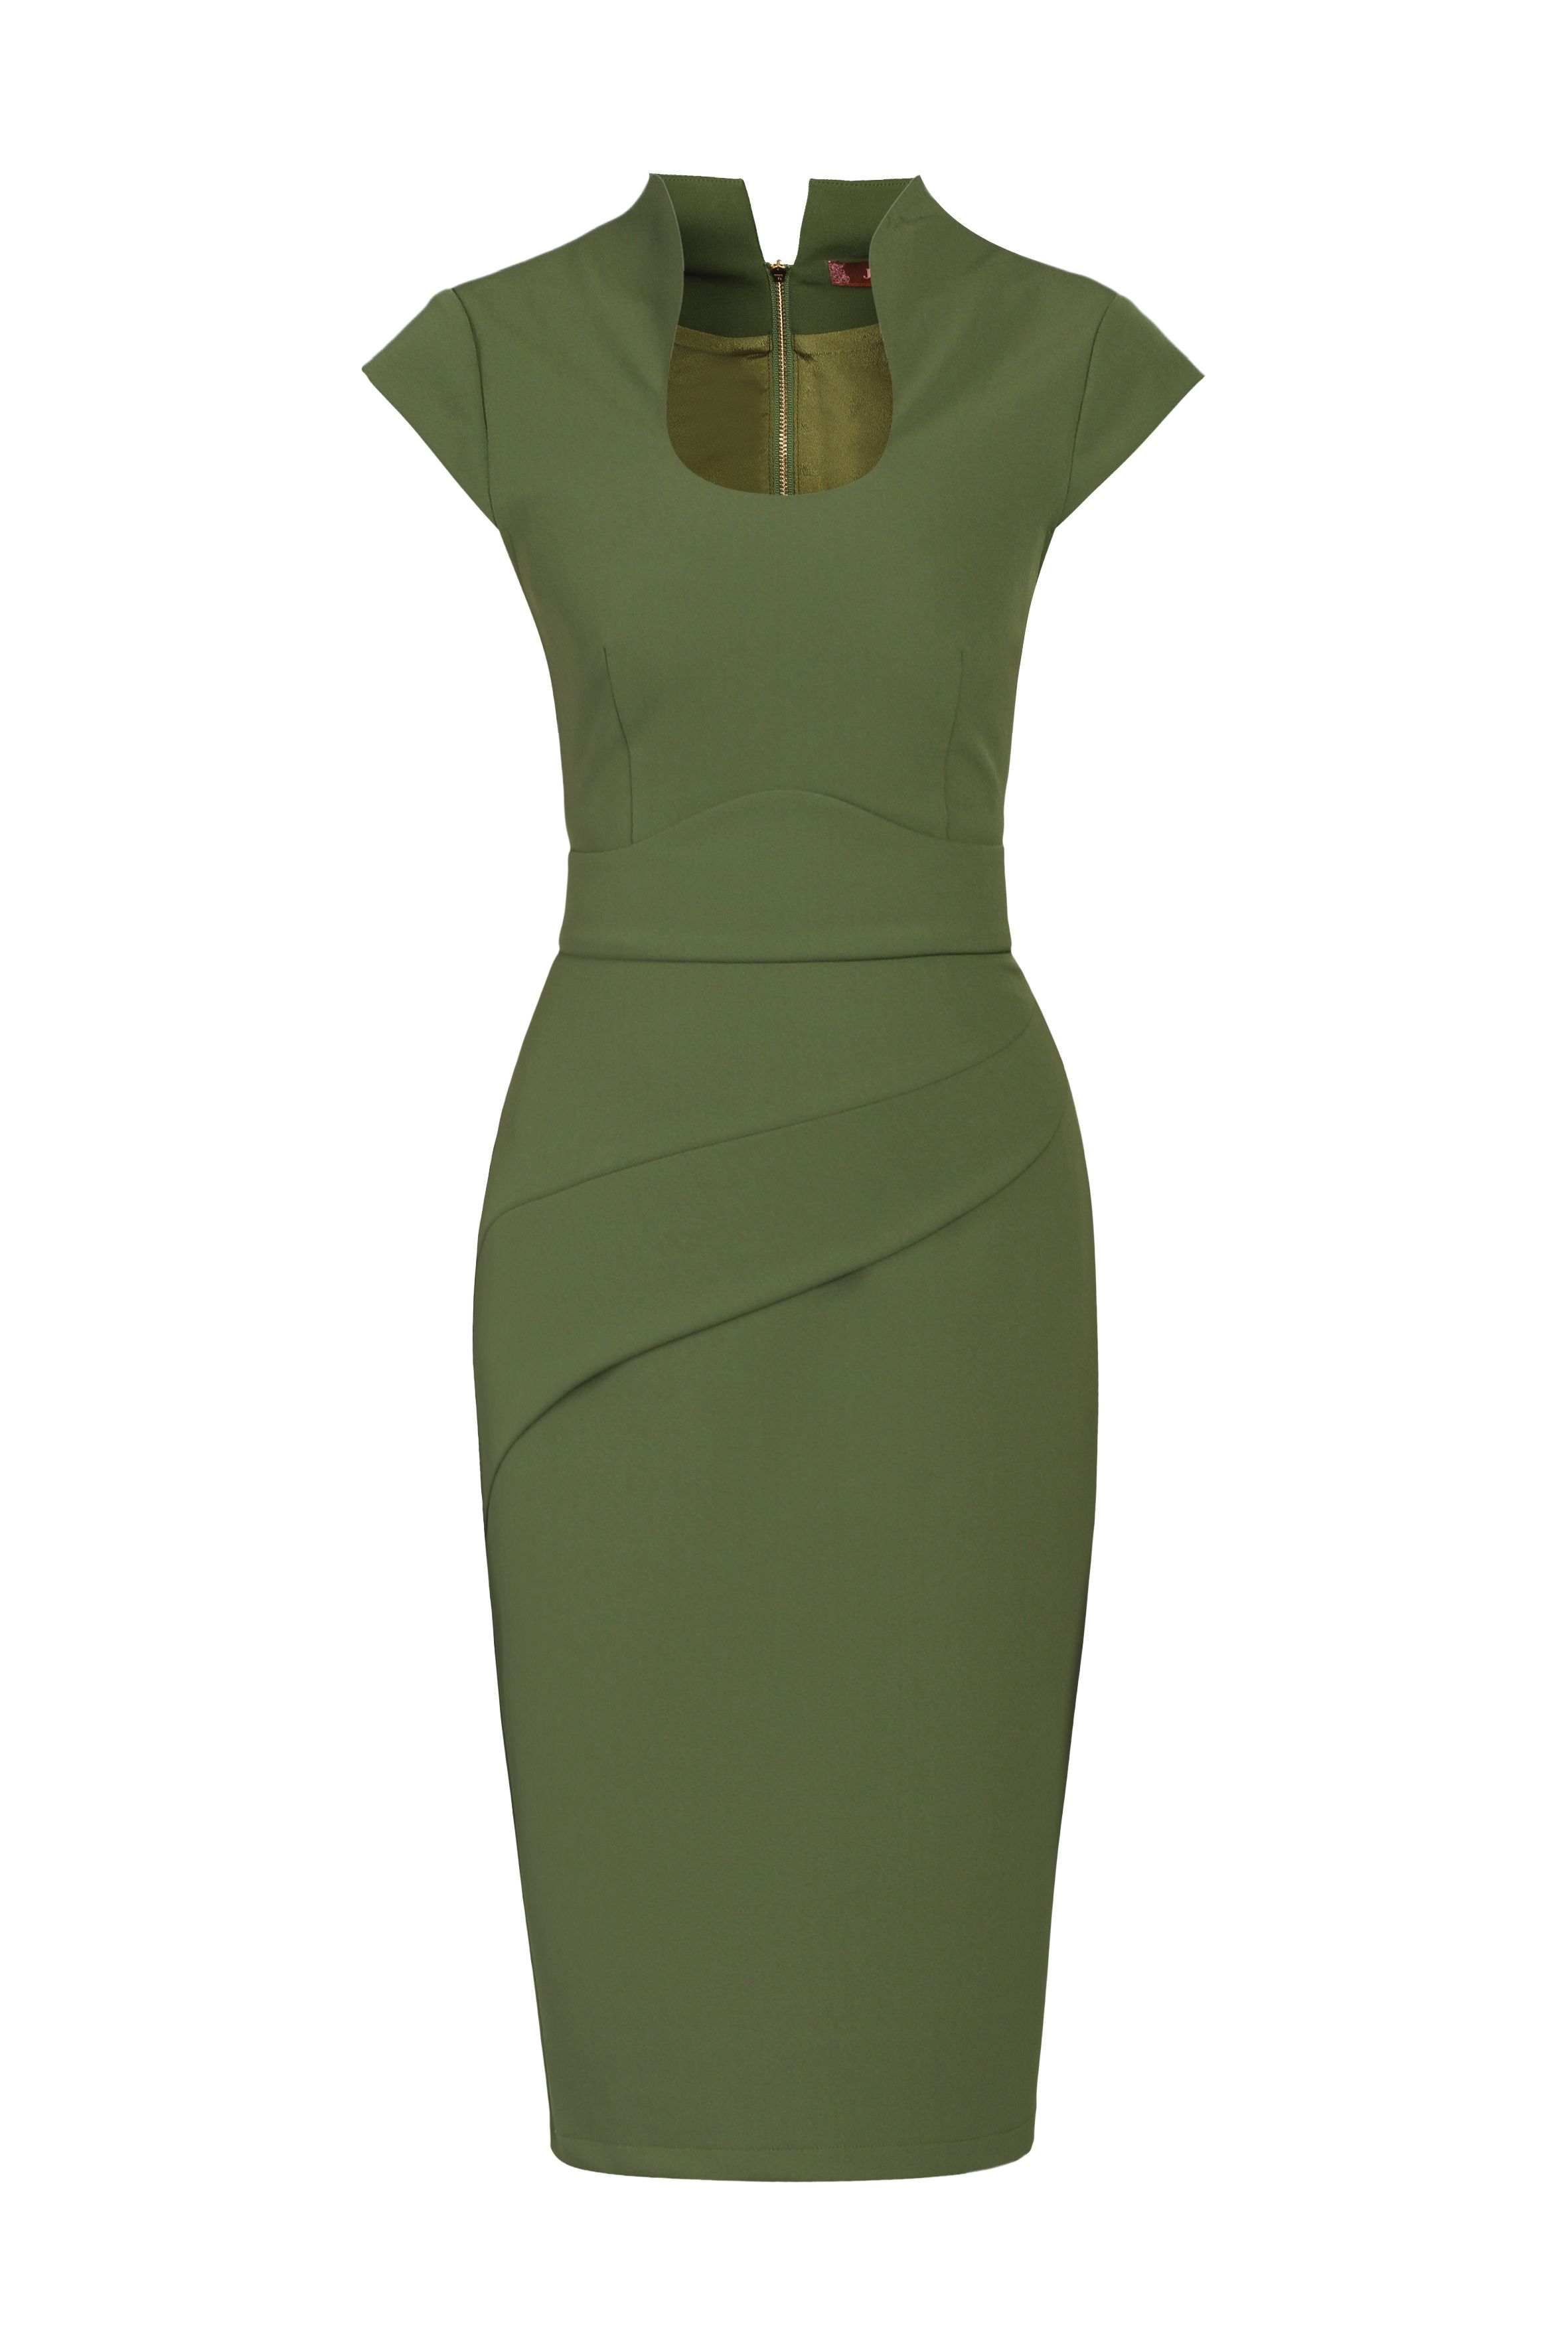 Jolie Moi Retro Neckline Fold Detail Dress, Green